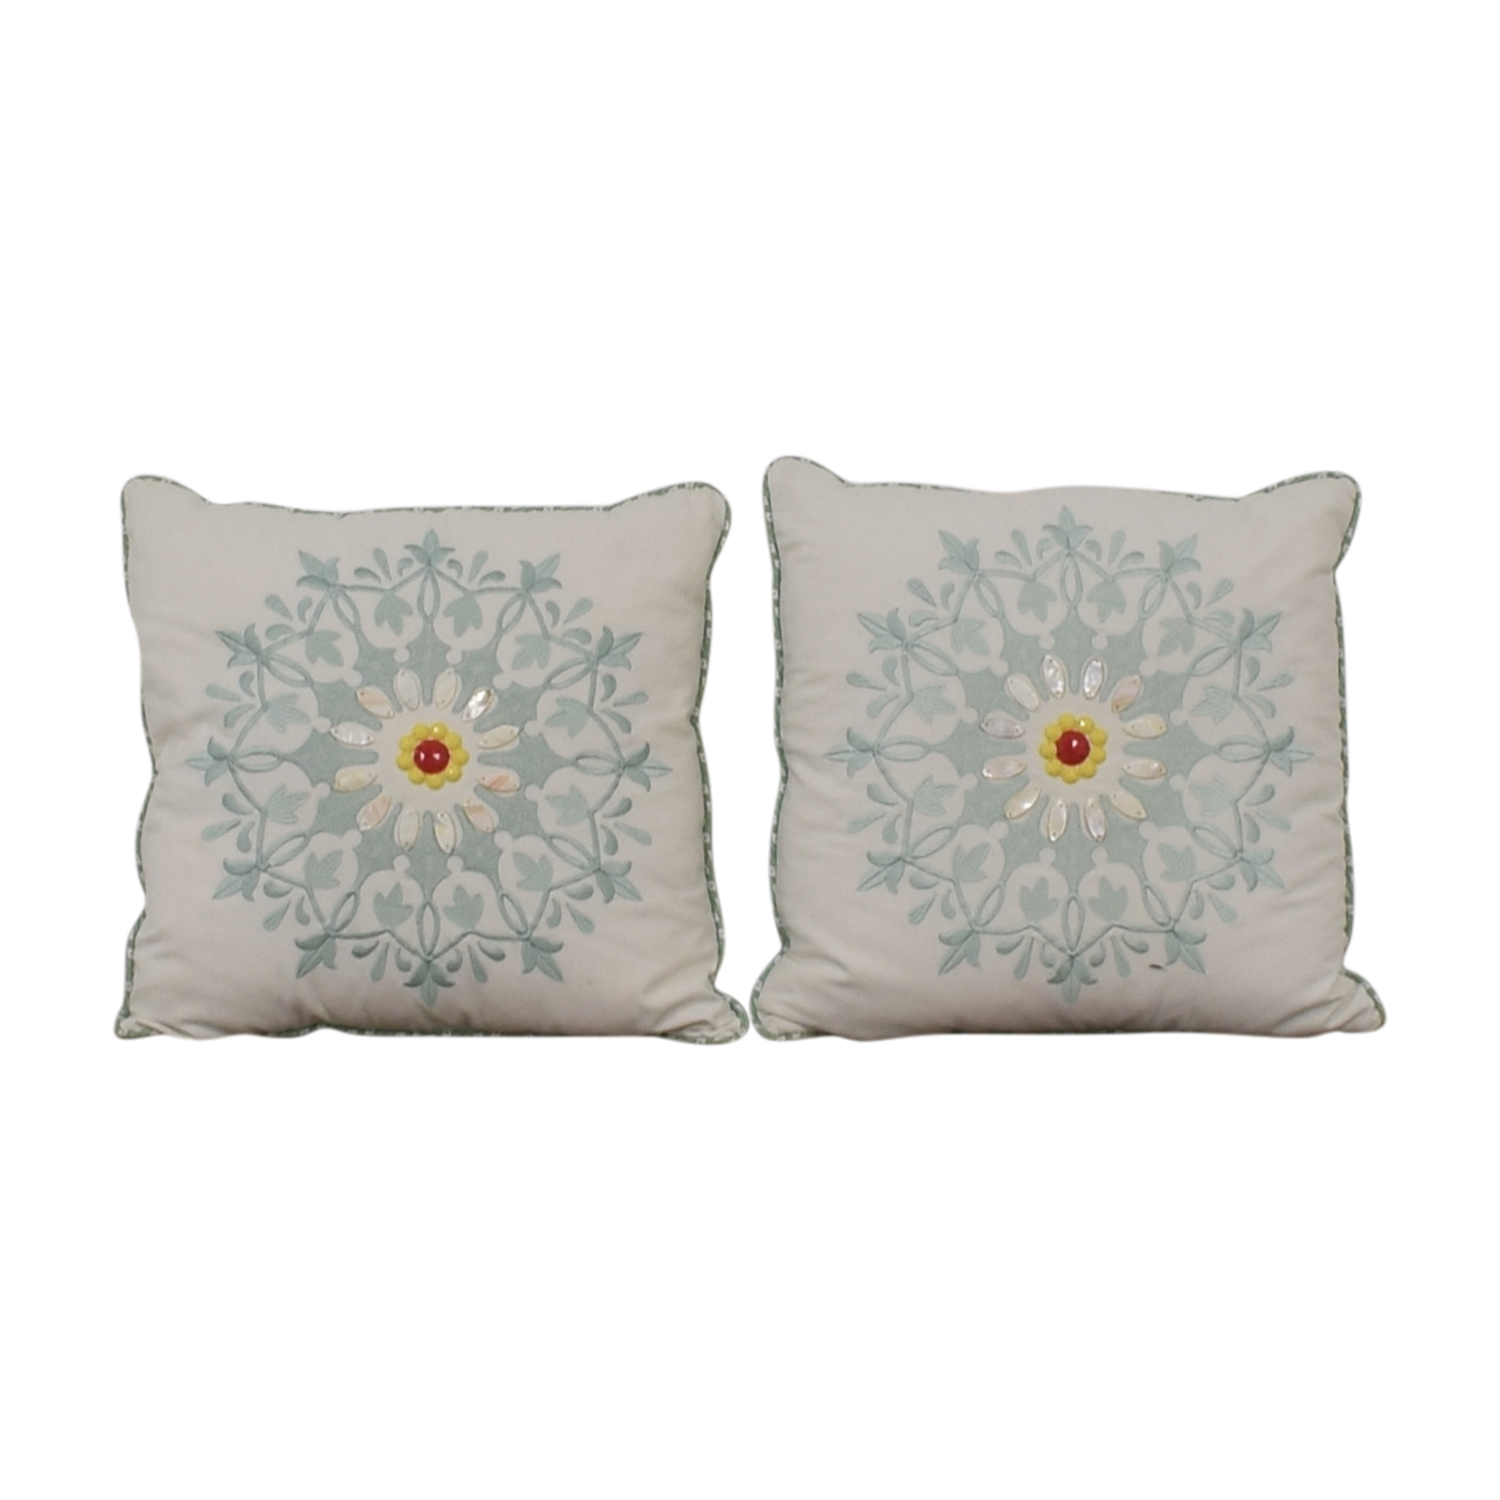 Macy's Macy's White and Blue Floral Accent Pillows second hand